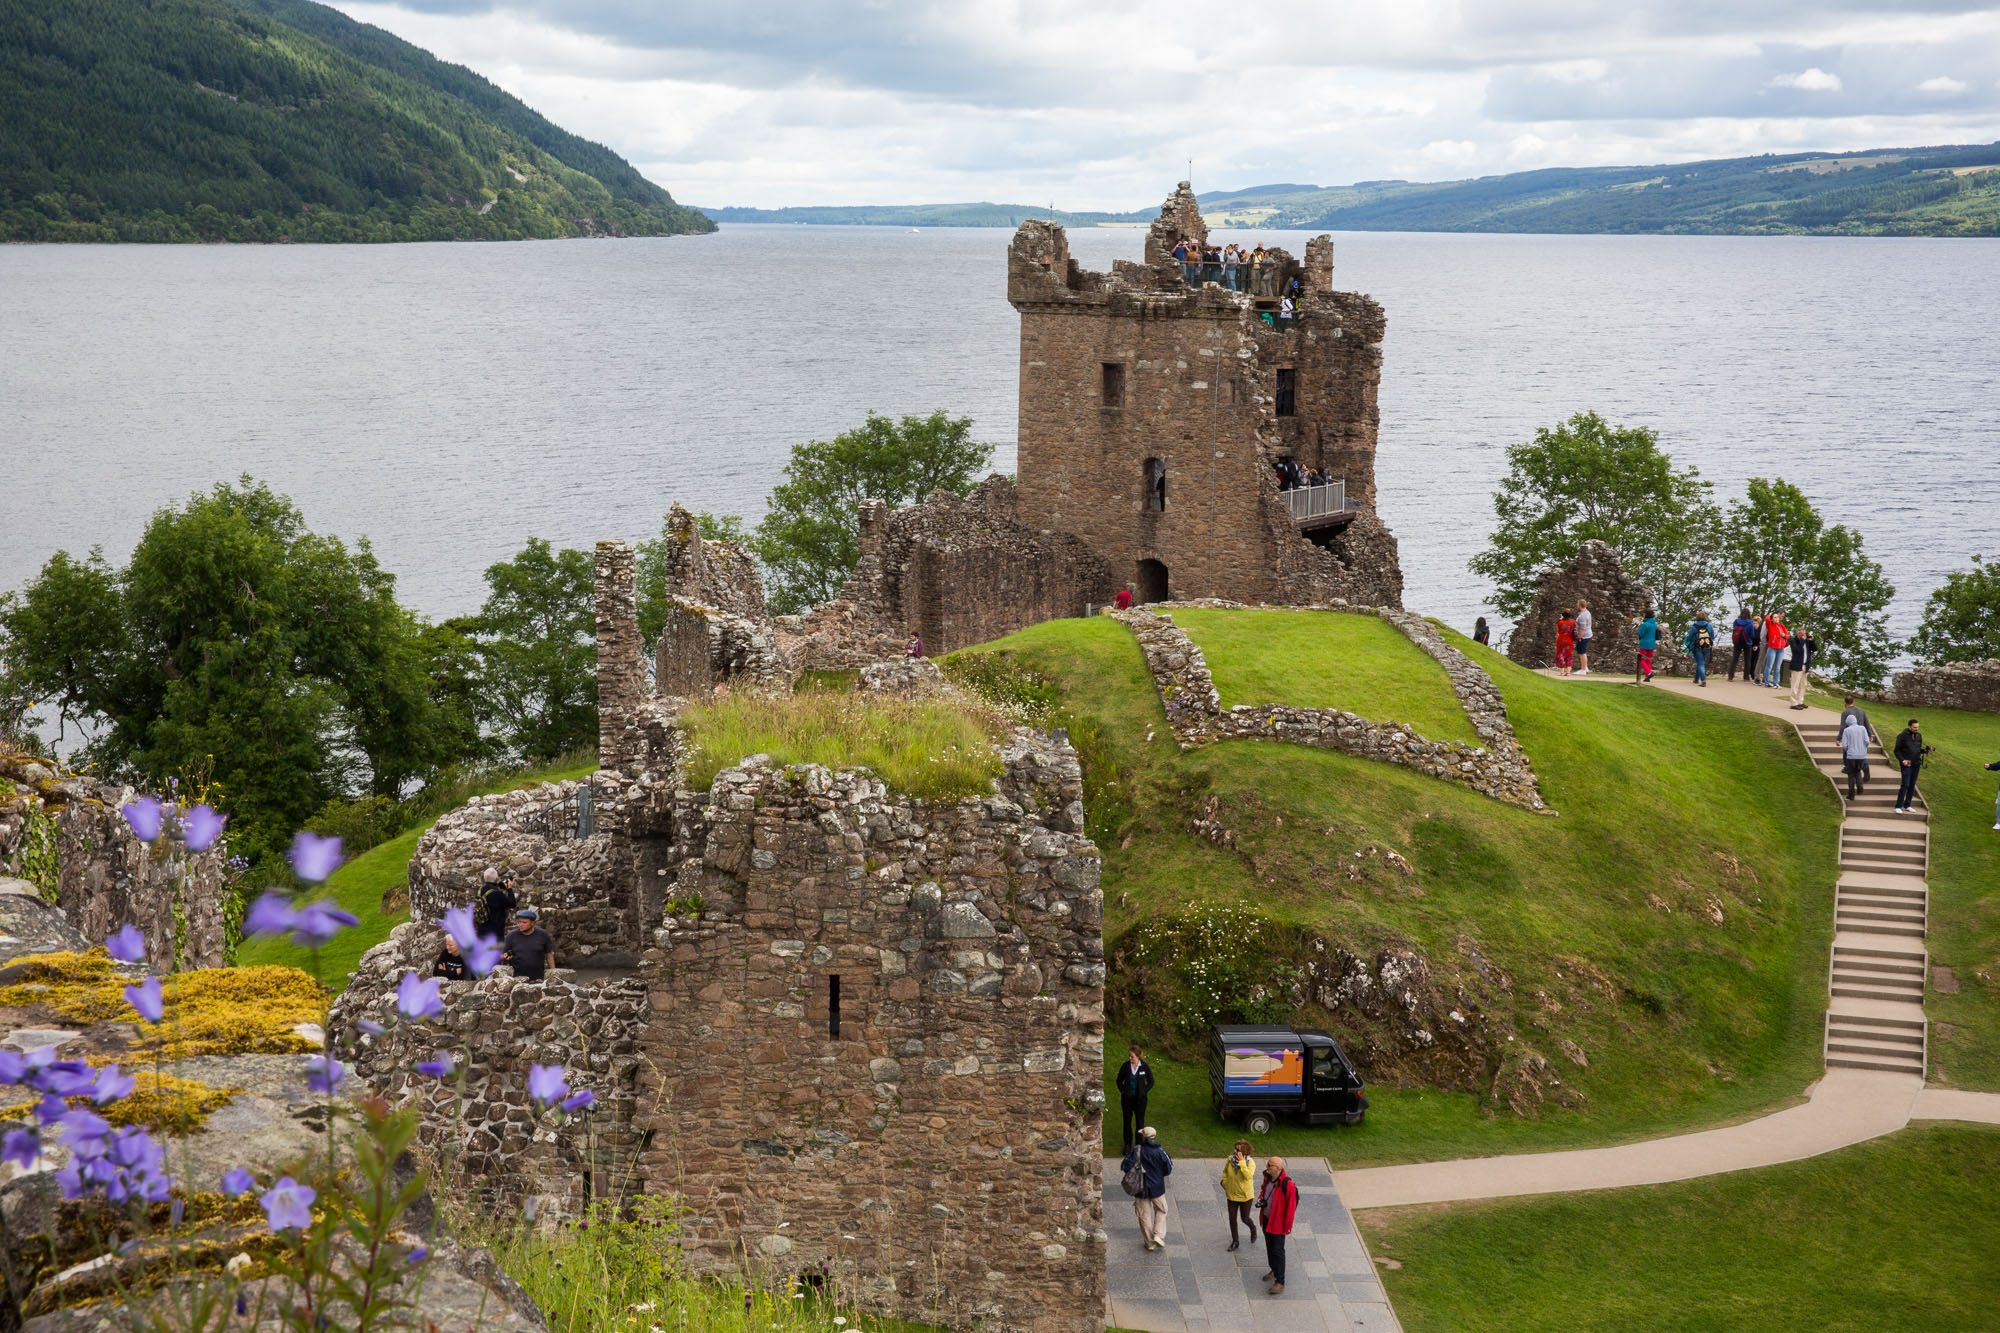 Is Loch Ness worth it